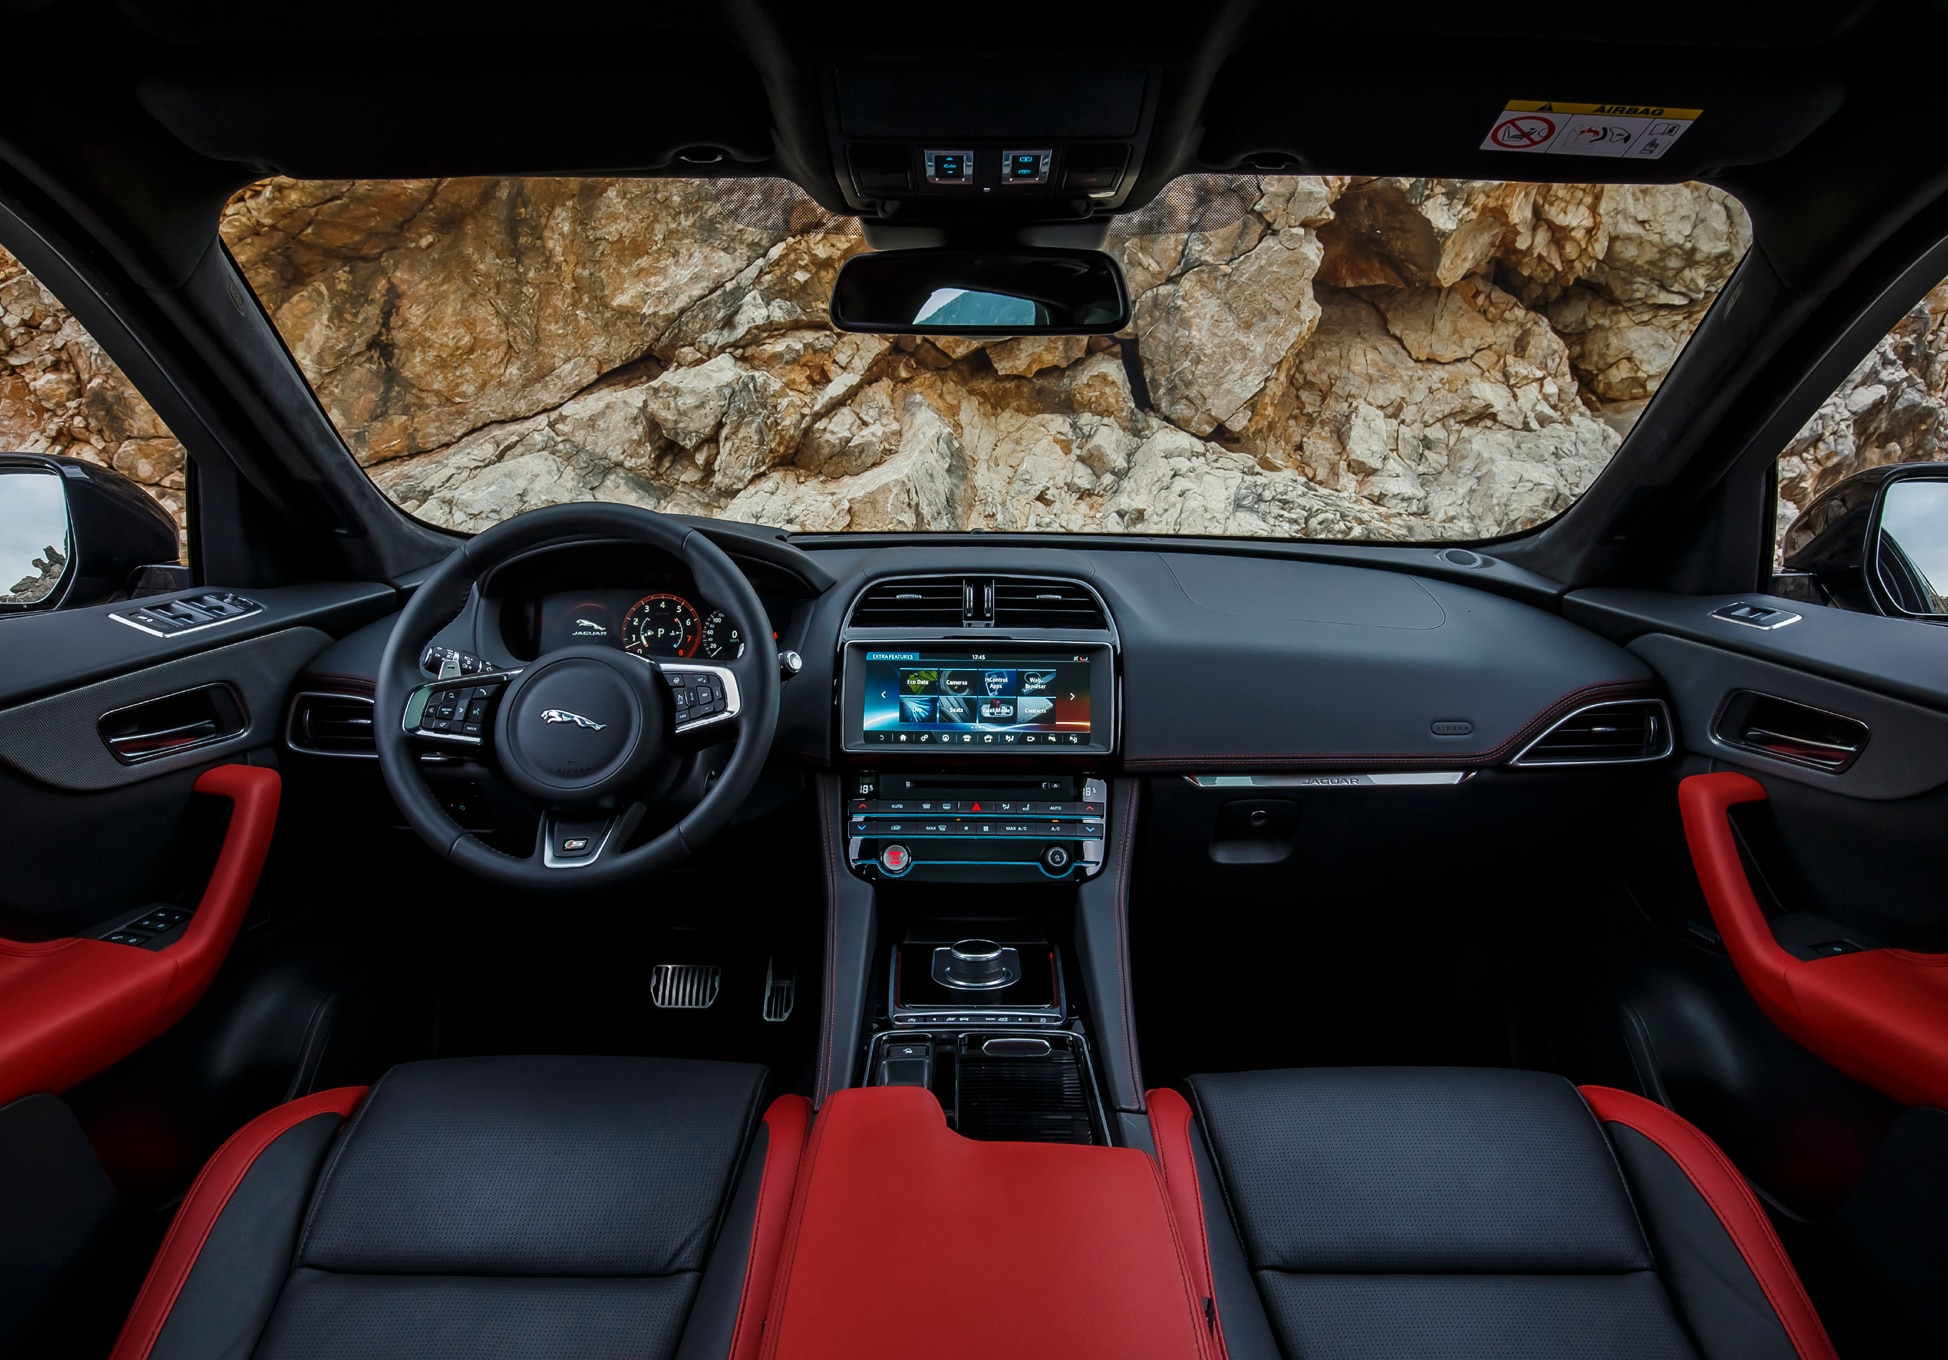 2017 jaguar f pace first edition interior view automobile